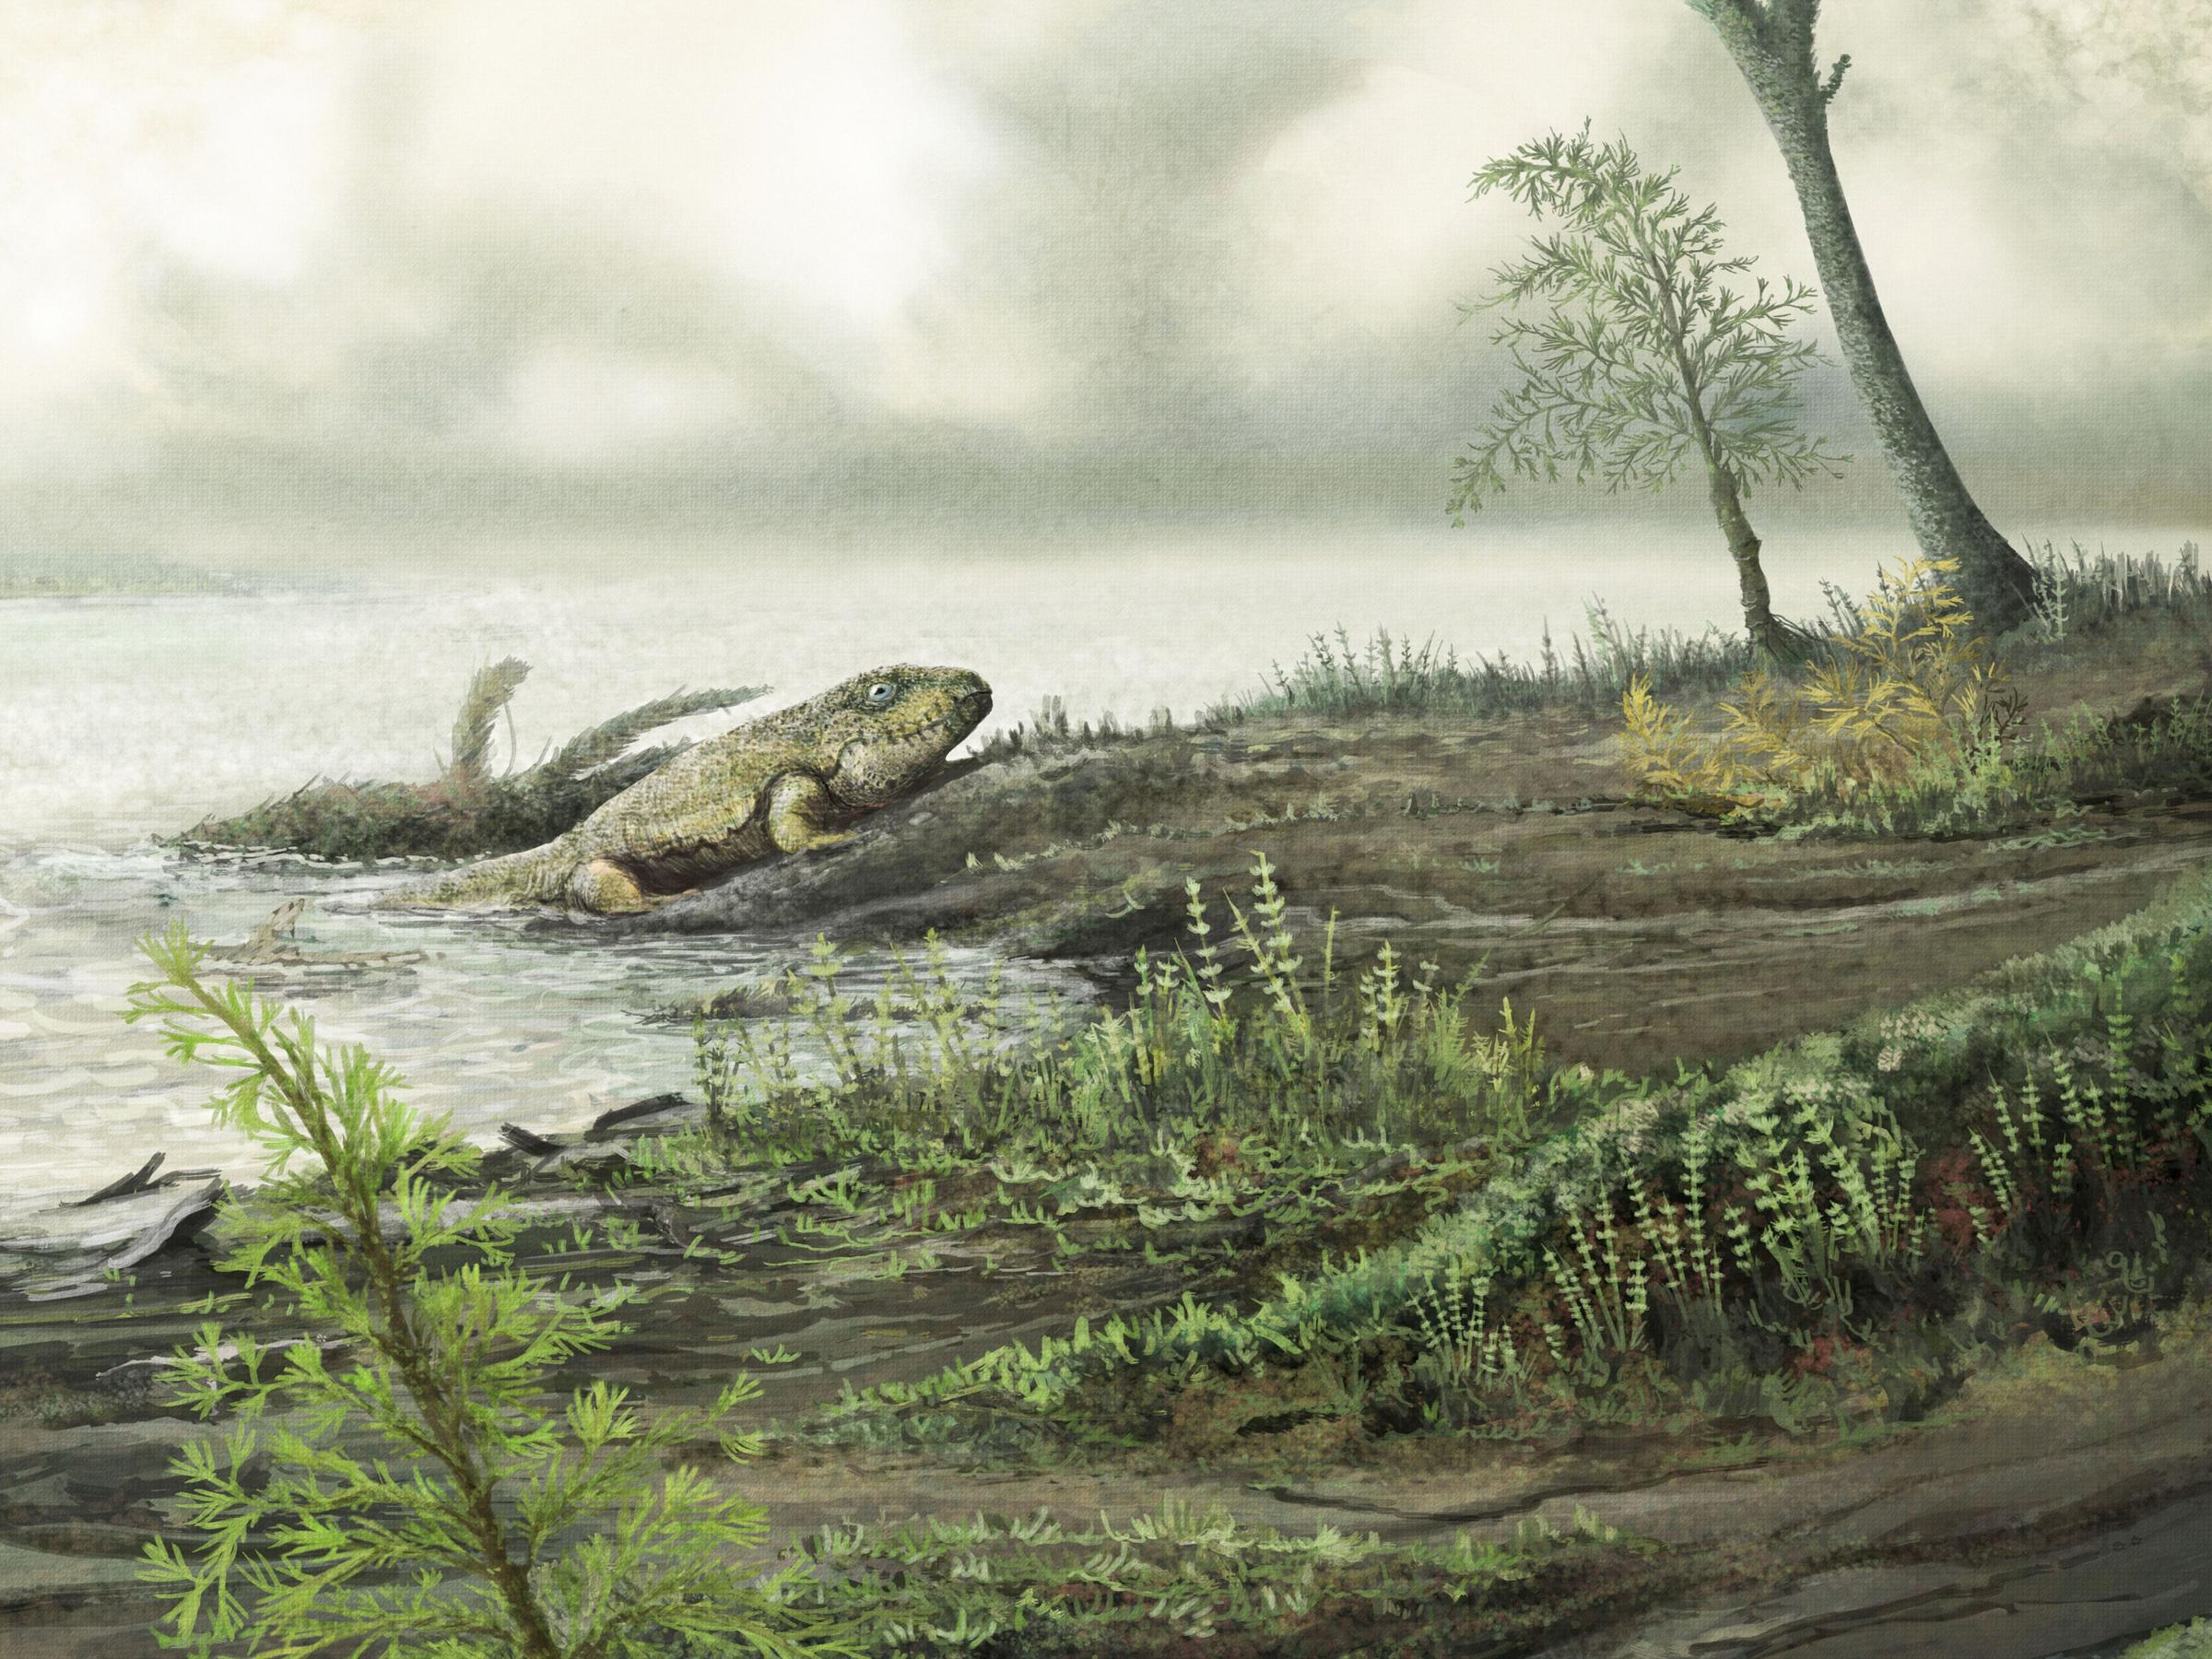 Antibiotic-resistant microbes evolved prior to dinosaurs